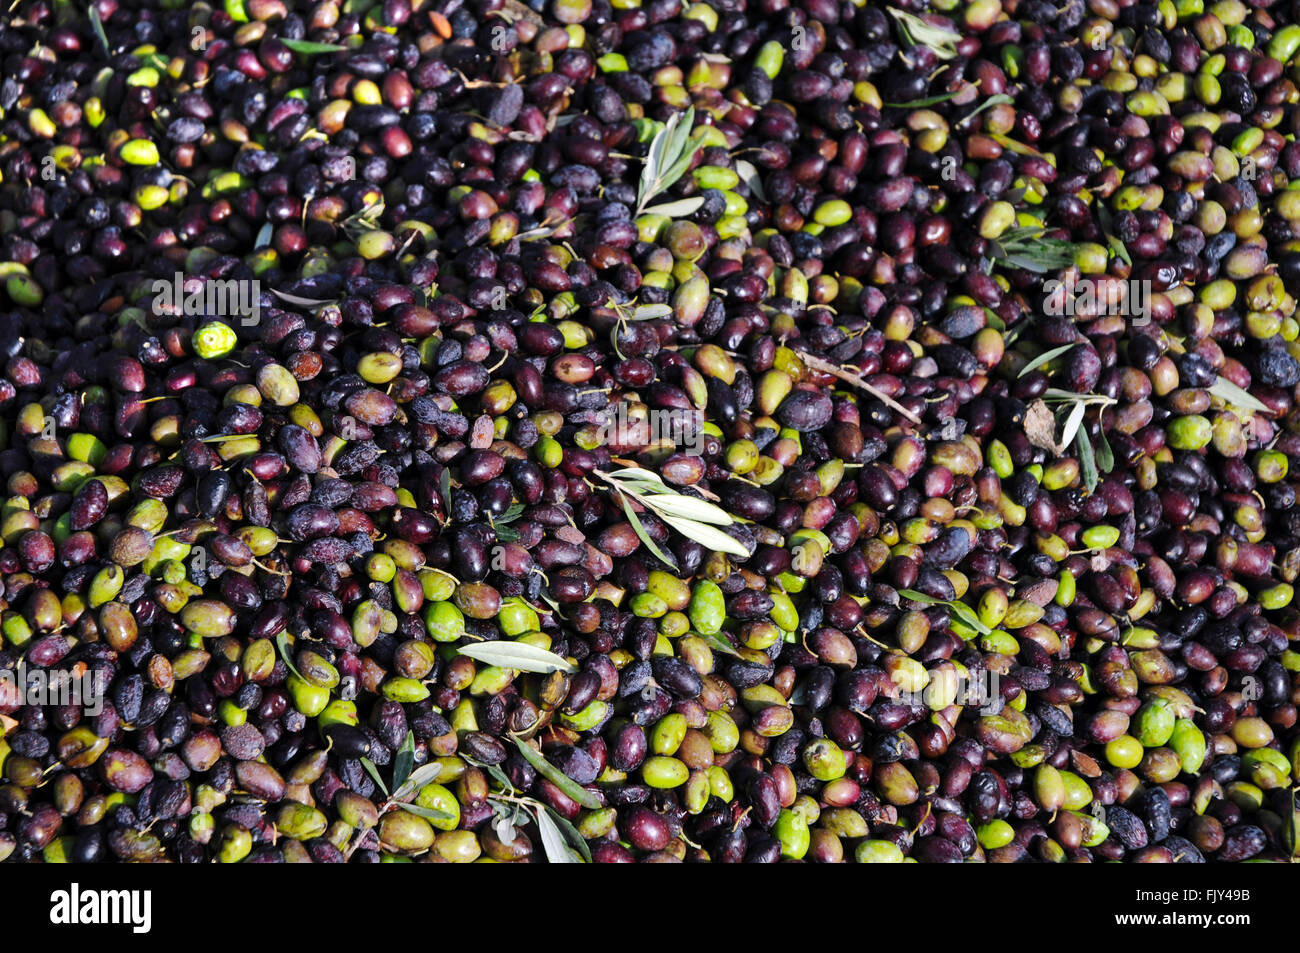 Pile of olives - Stock Image